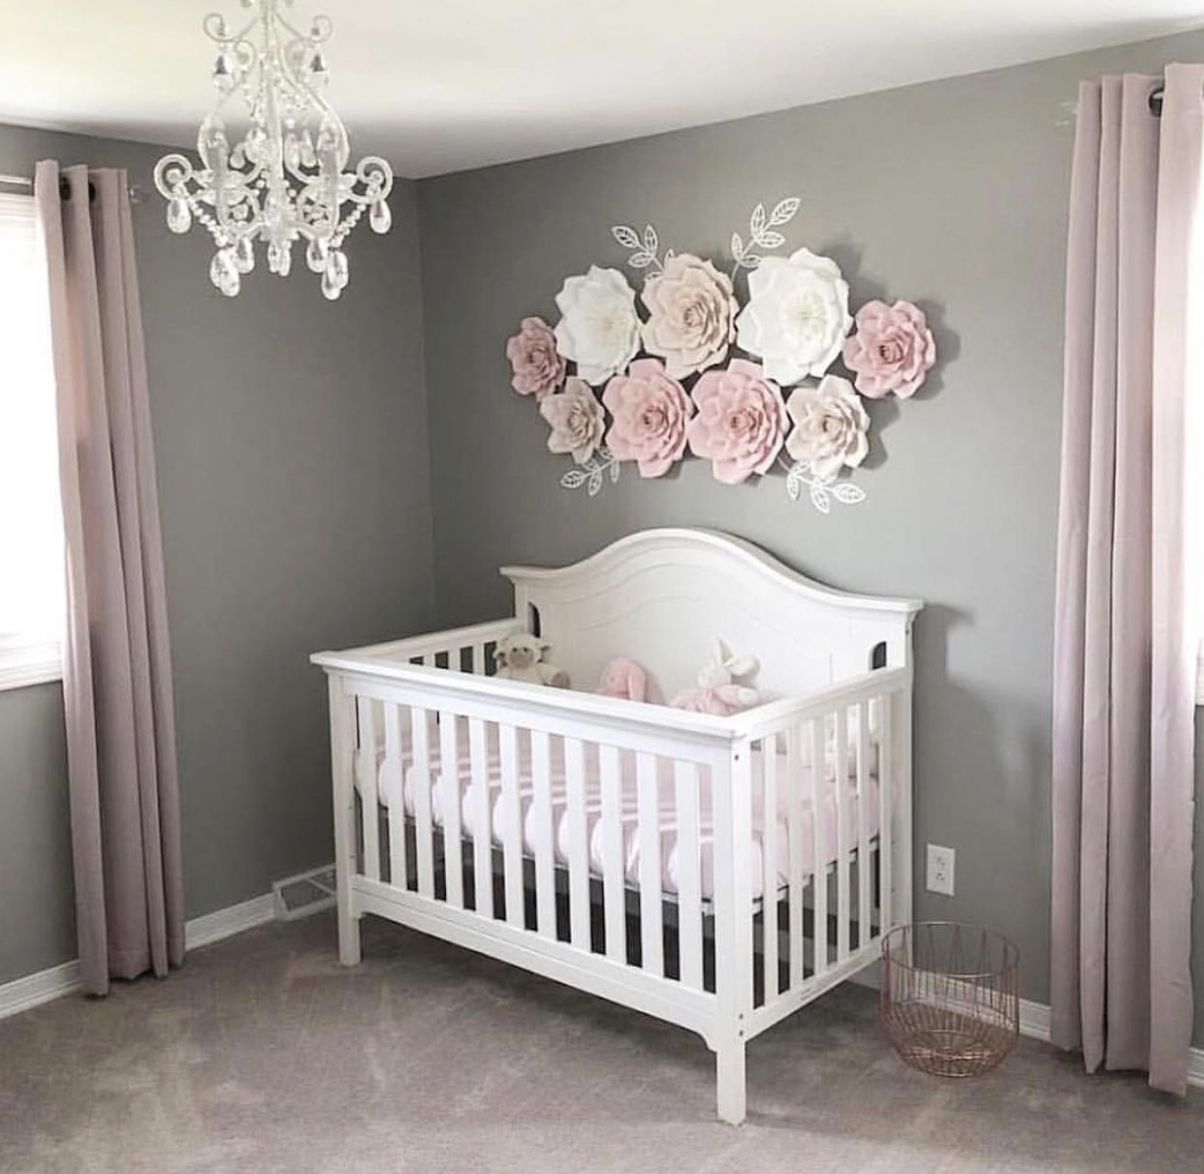 Baby girl flower wall nursery (With images) | Baby girl nursery ...